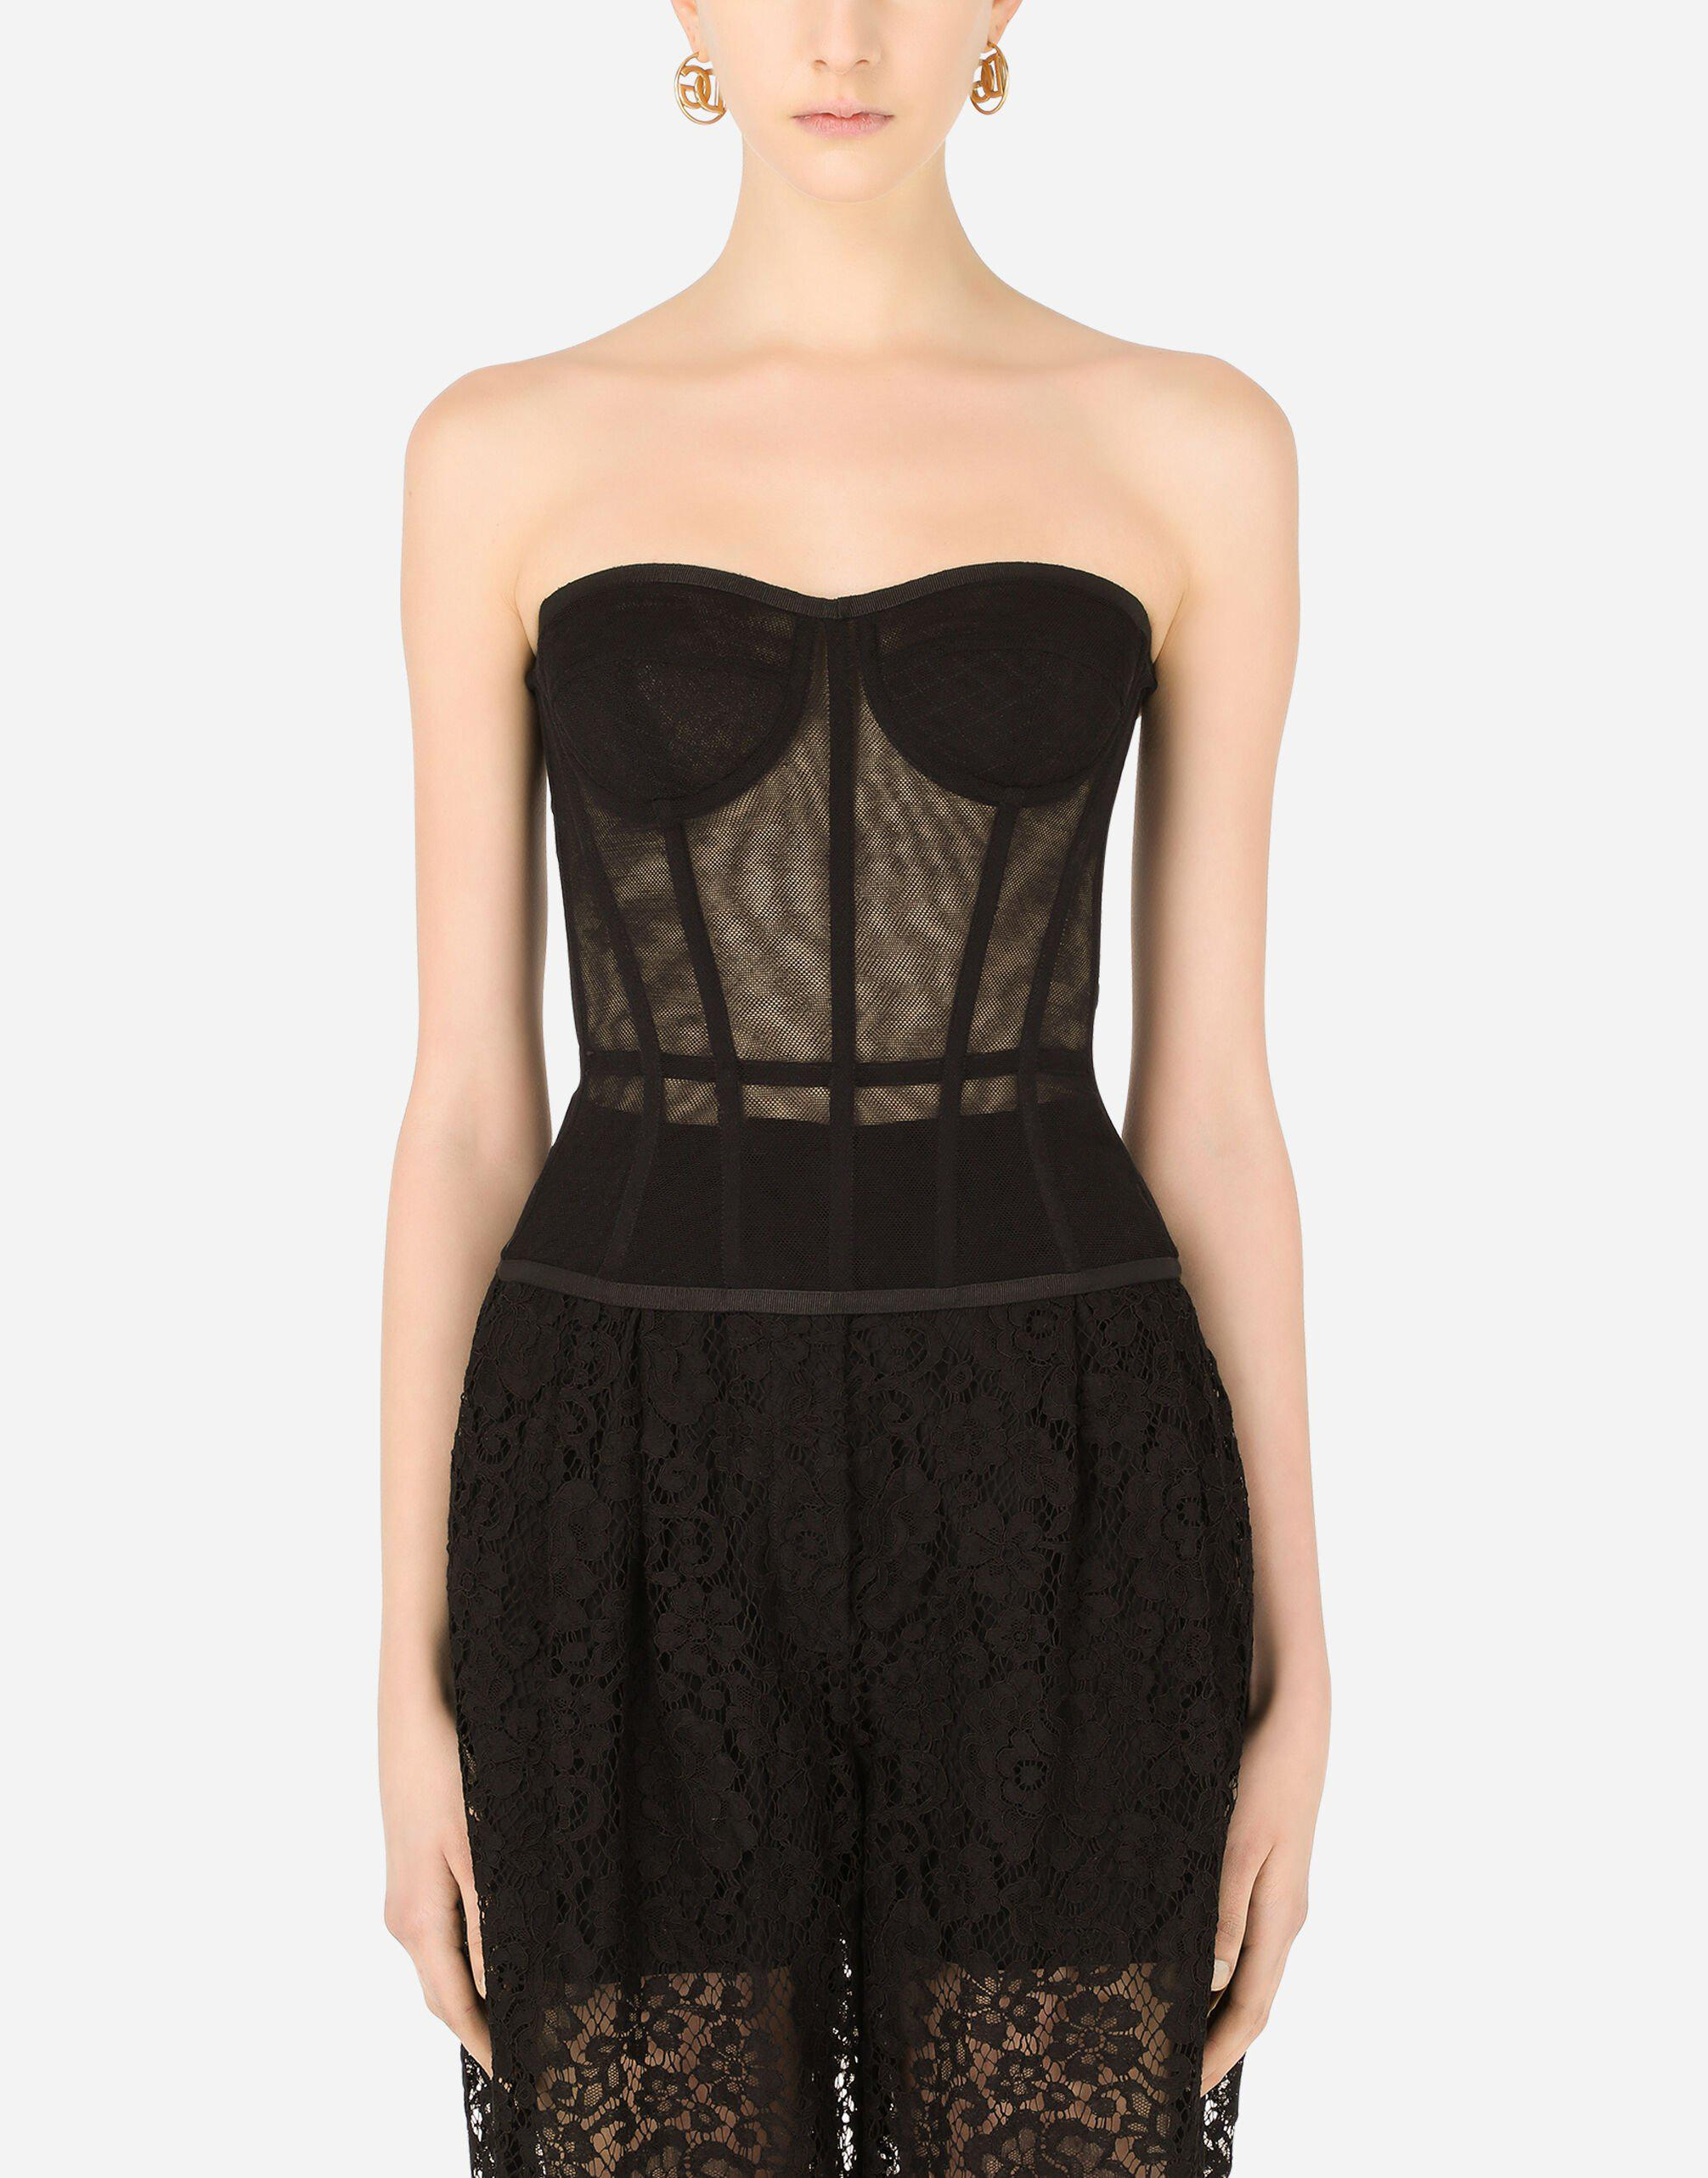 Cotton tulle bustier top